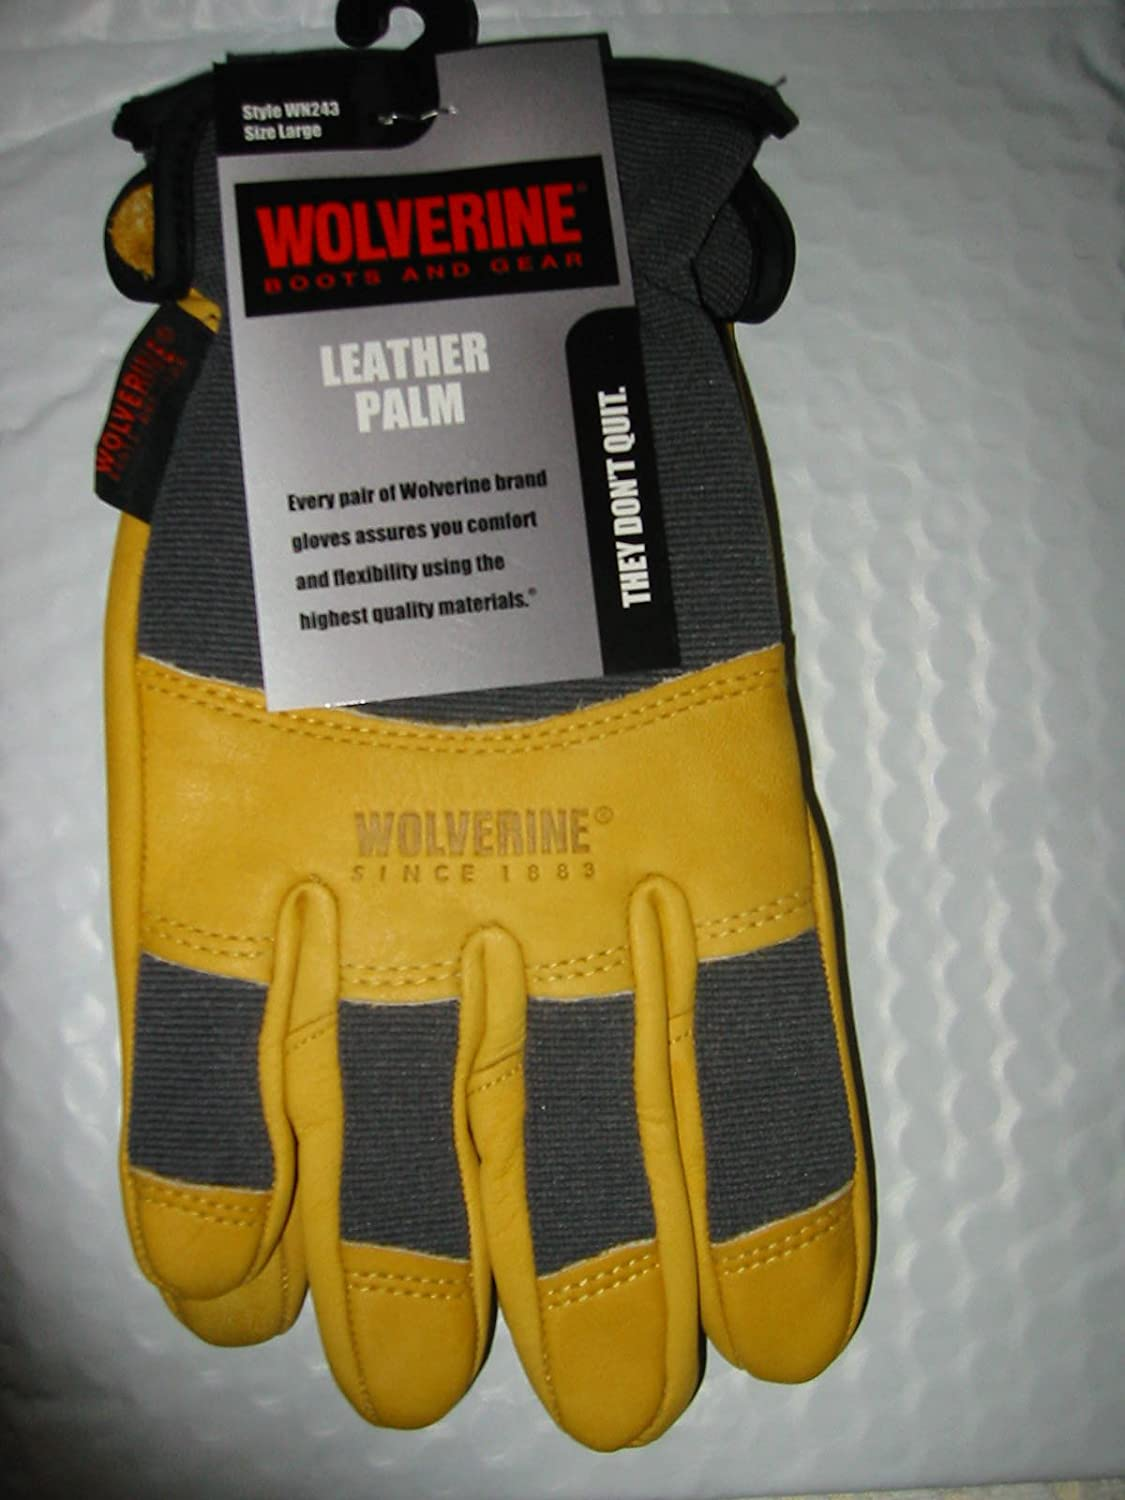 3pk wolverine leather work gloves extra large - Wolverine Men S Edge Lx Epx Work Boots Waterproof Taupe Yellow